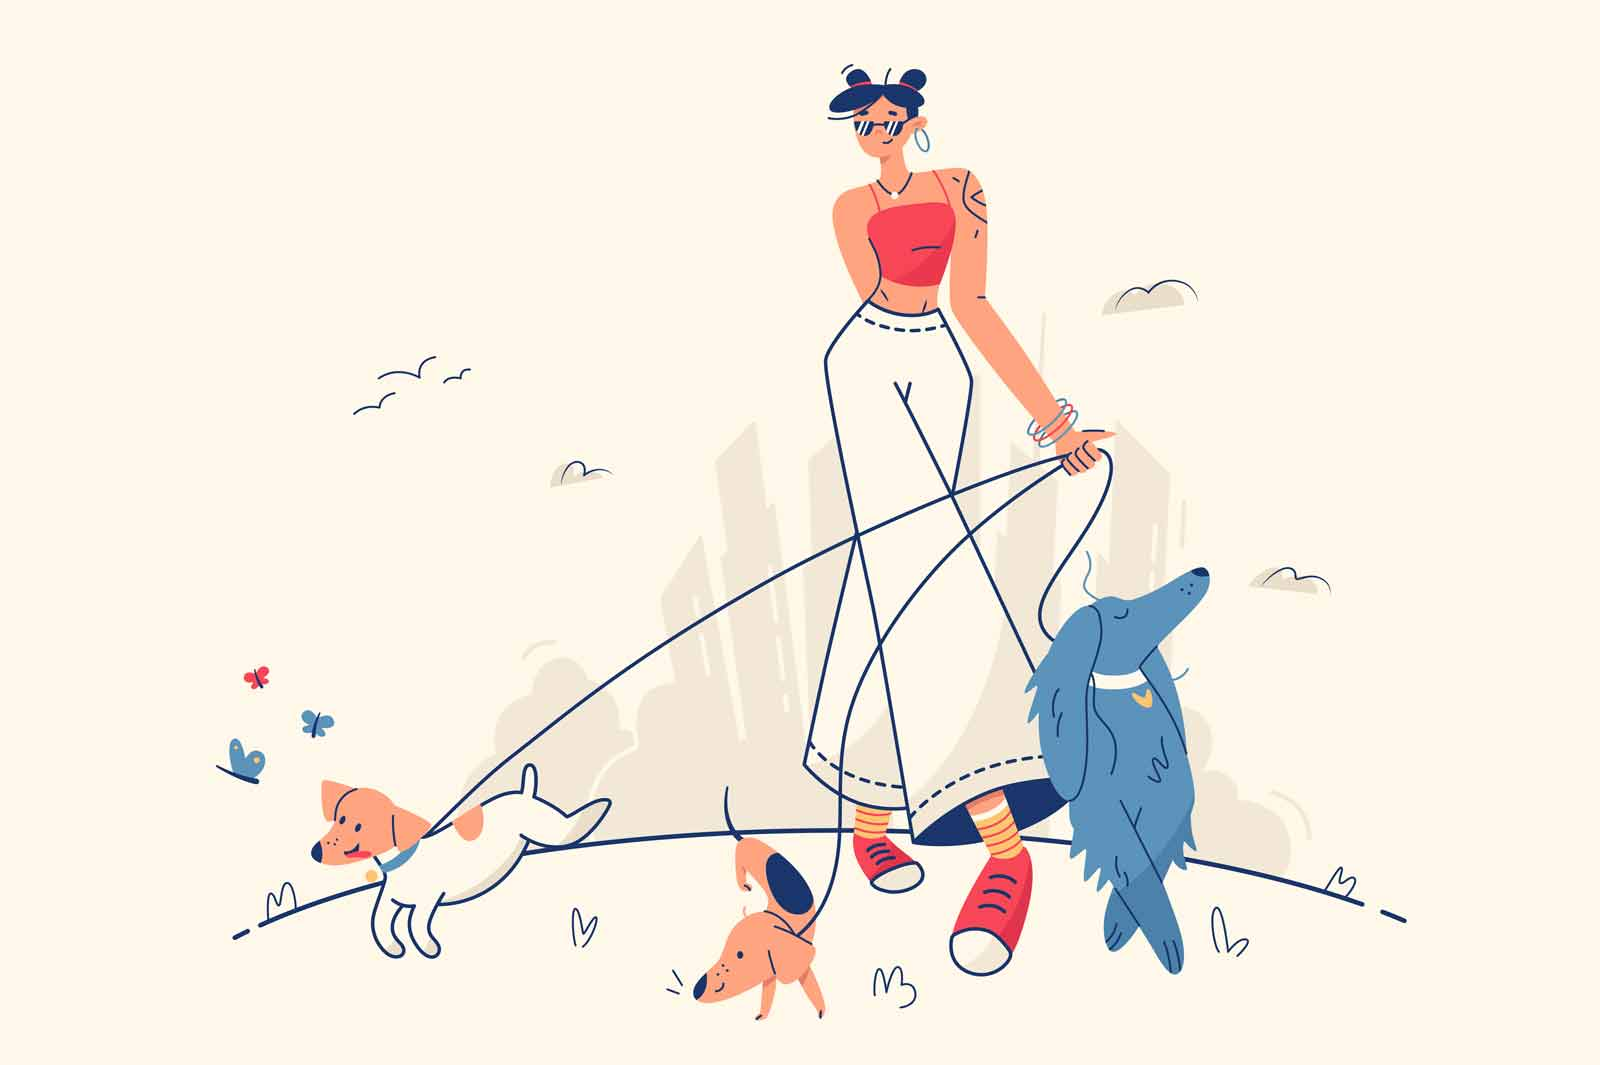 Stylish girl walking with dogs vector illustration. Woman walking in park on fresh air with domestic pets flat style. Leisure, weekend, fun spare time concept. Isolated on beige background